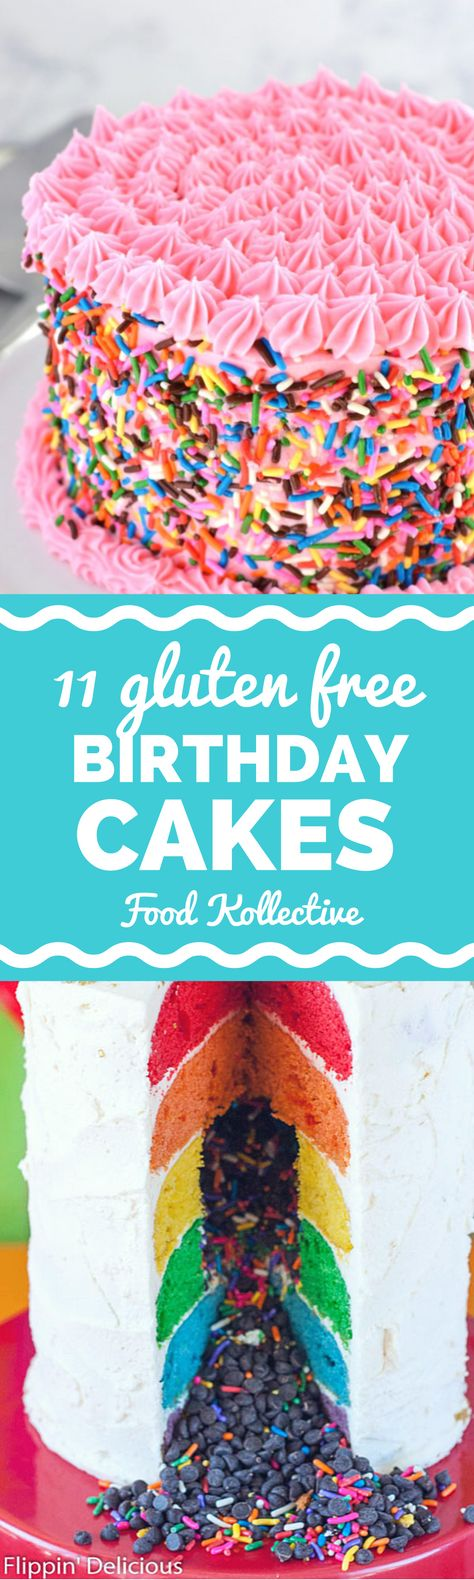 Fun cake recipes! Red velvet, chocolate, funfetti, rainbow, etc.